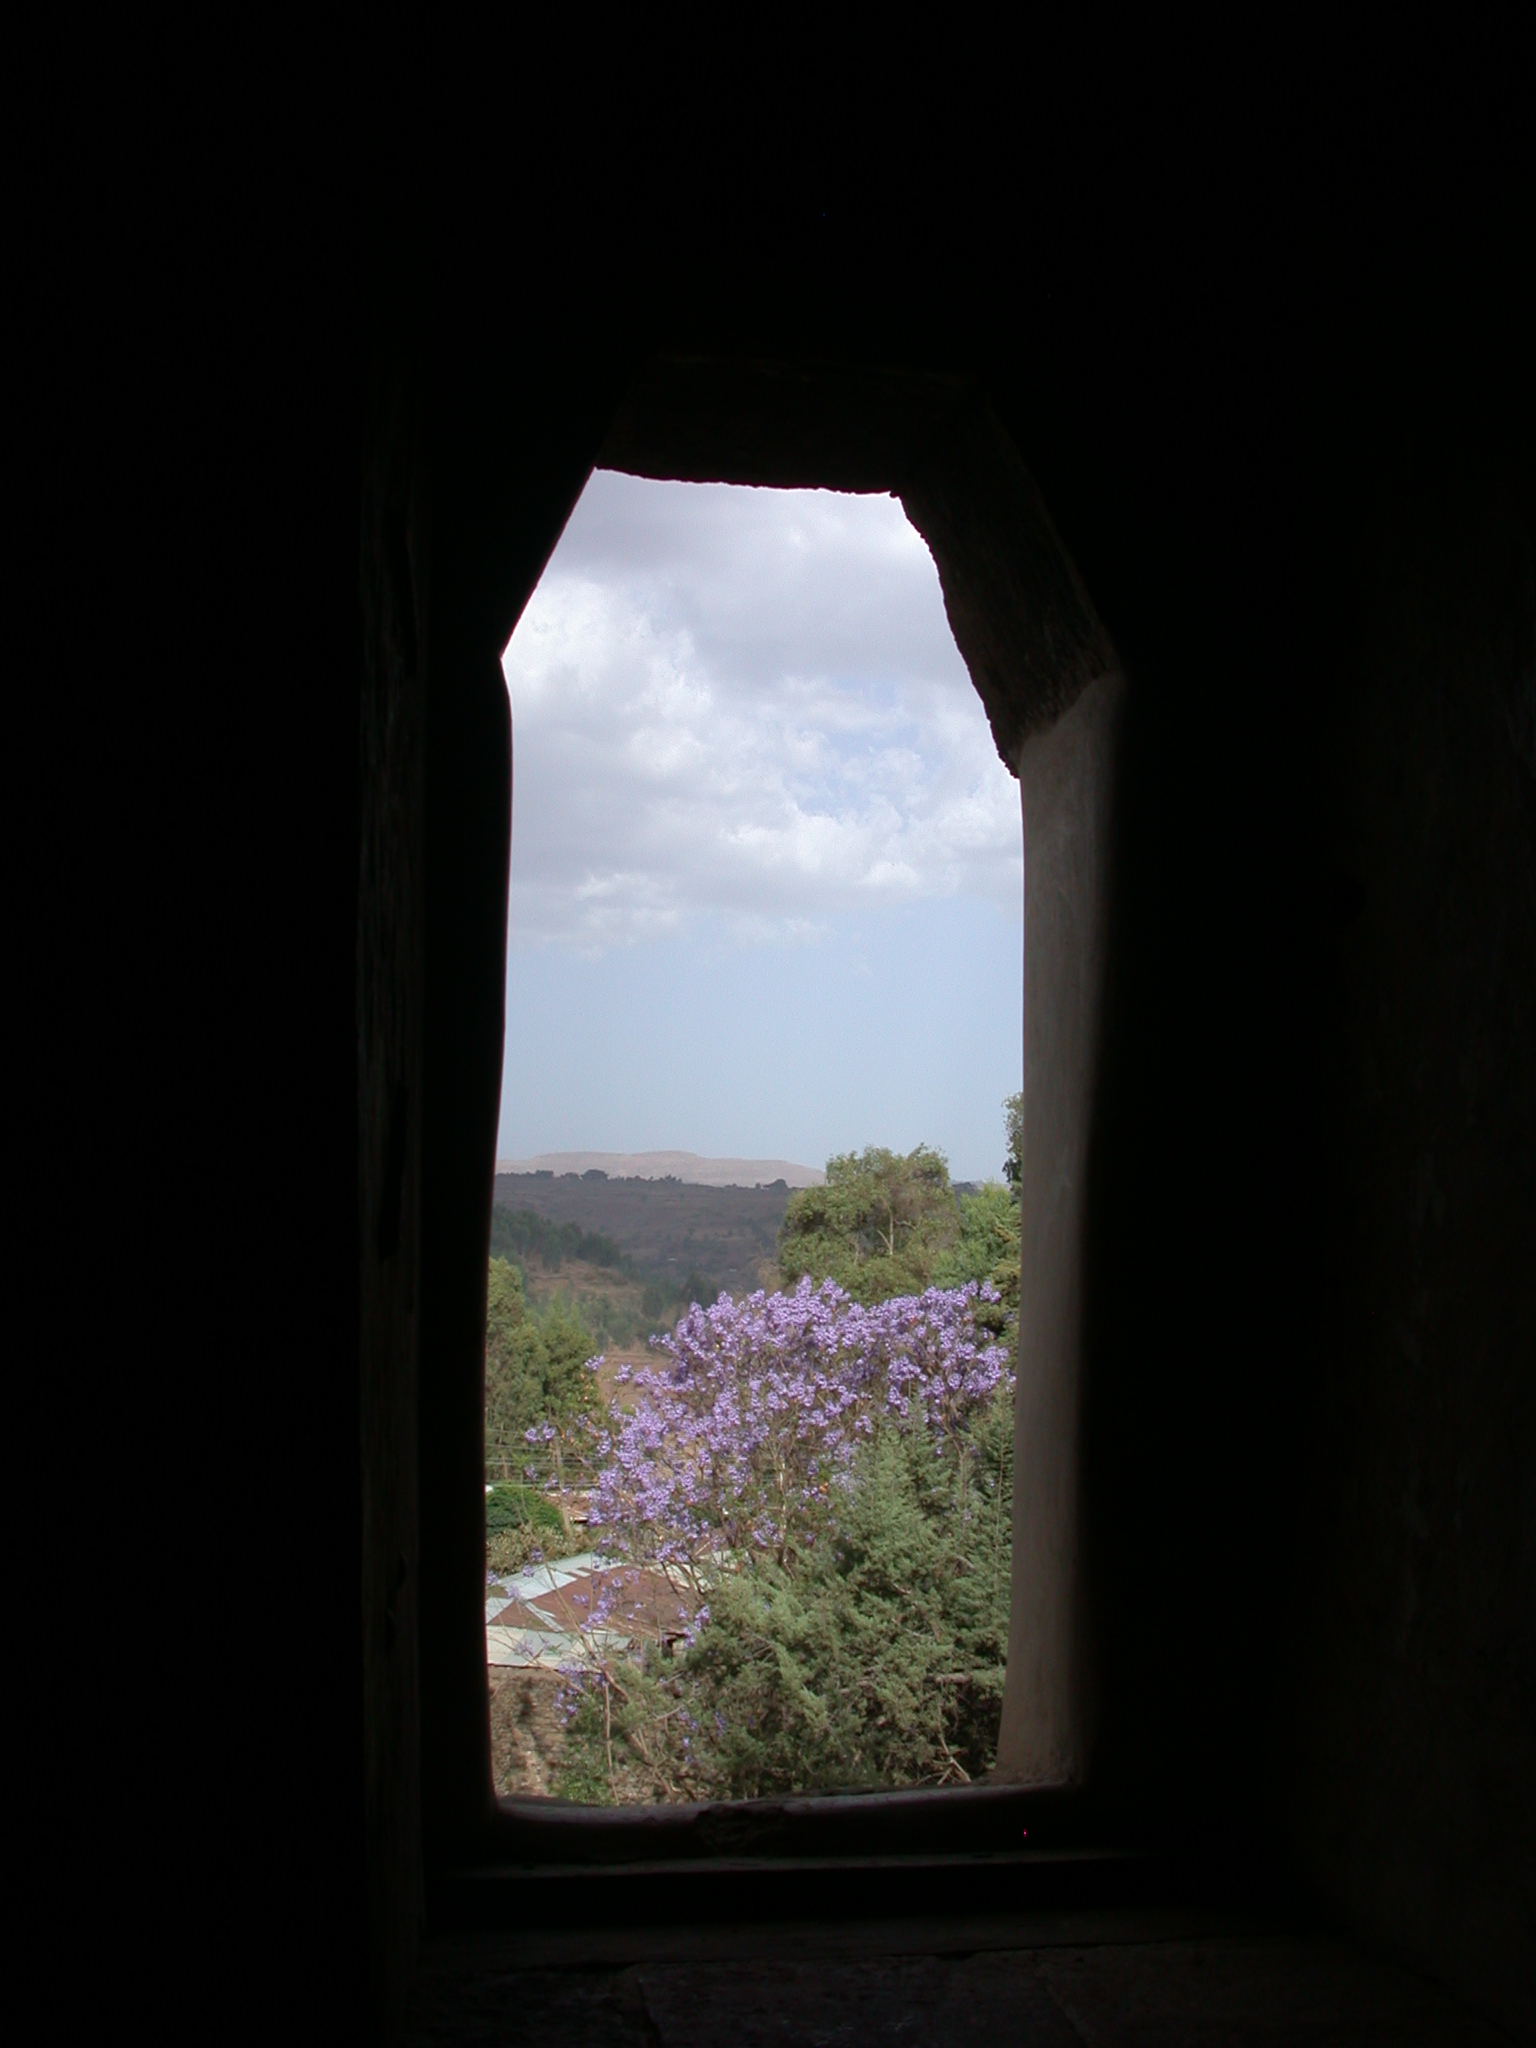 View of Jacaranda From Palace, Fasil Ghebbi Royal Enclosure, Gonder, Ethiopia